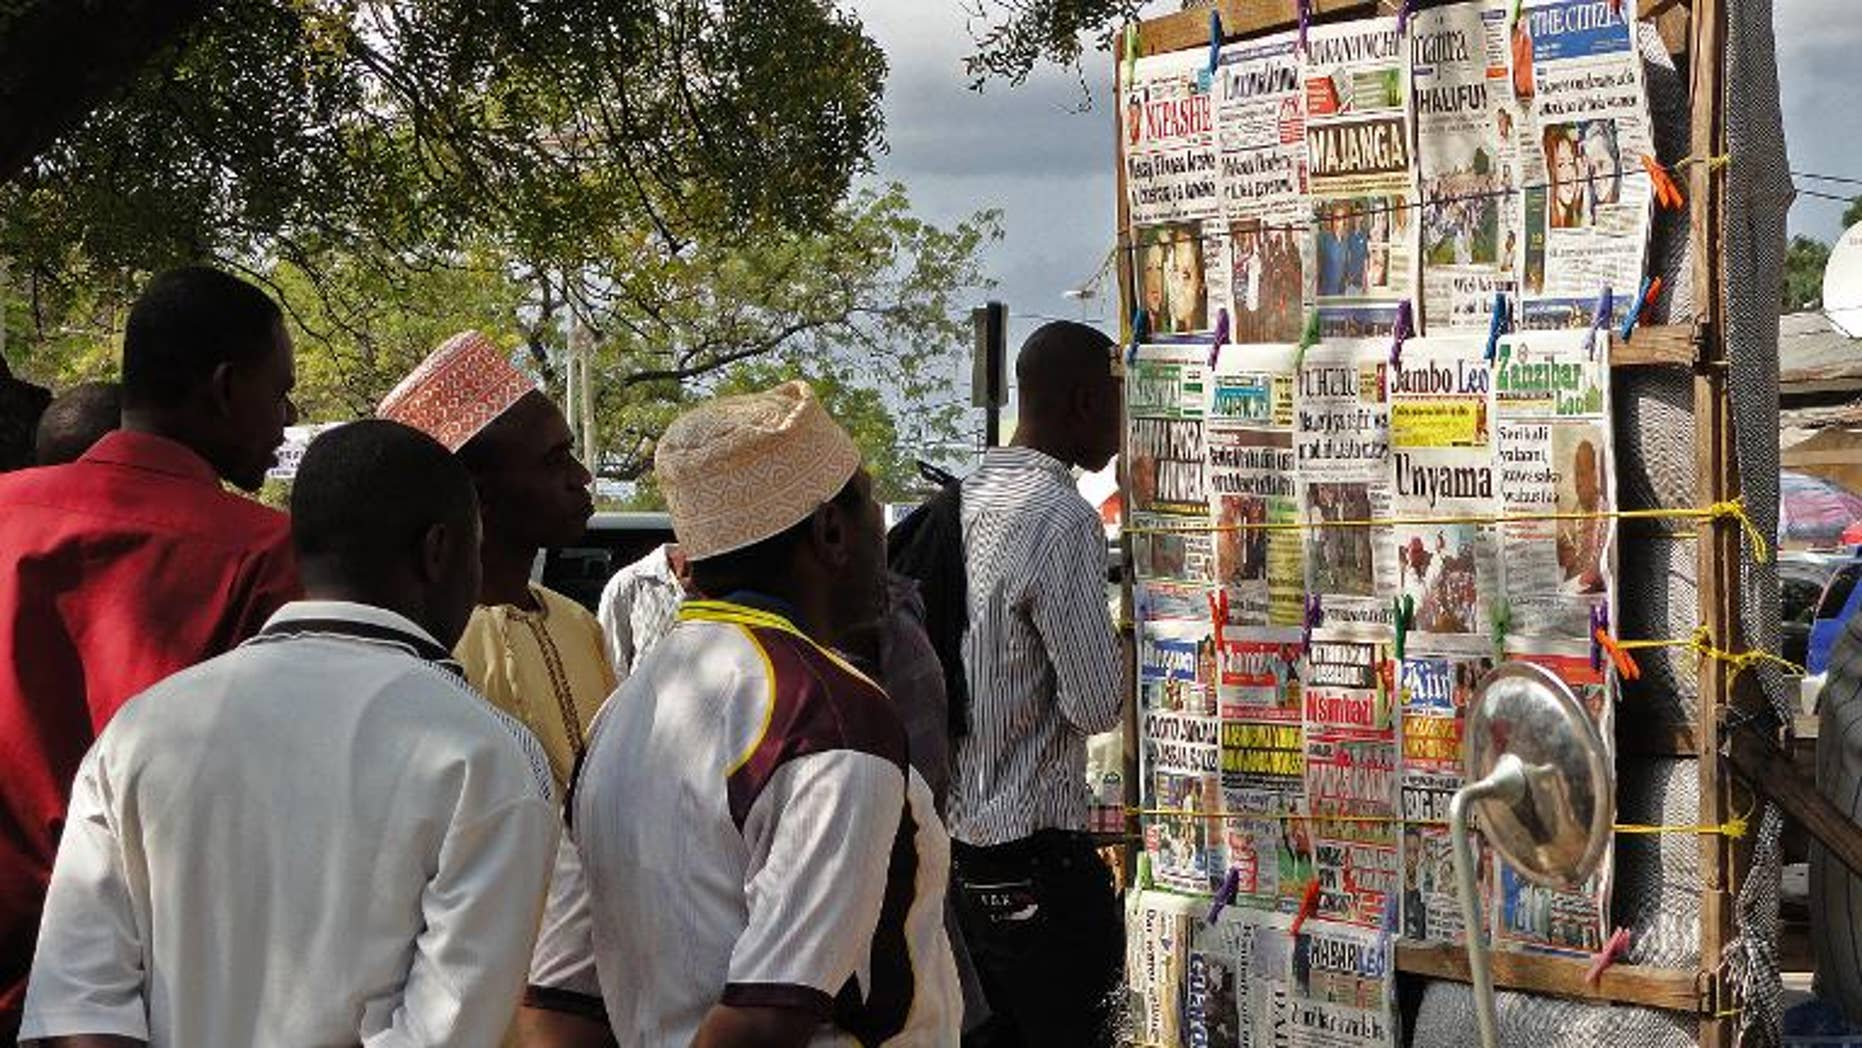 Locals look at newspaper headlines in Stone Town on the Indian Ocean island of Zanzibar on August 9, 2013